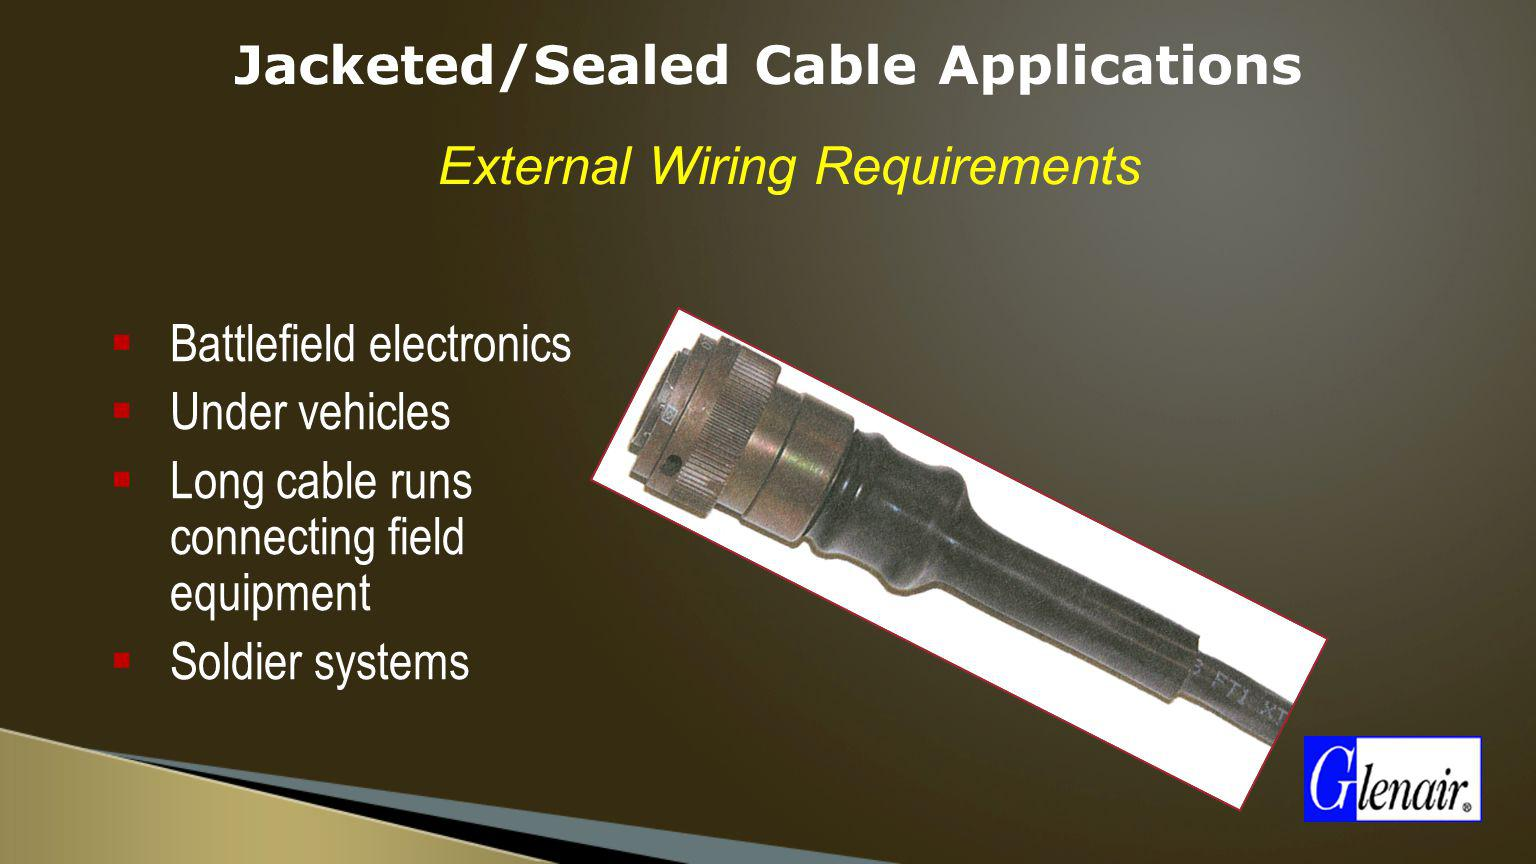 Jacketed/Sealed Cable Applications